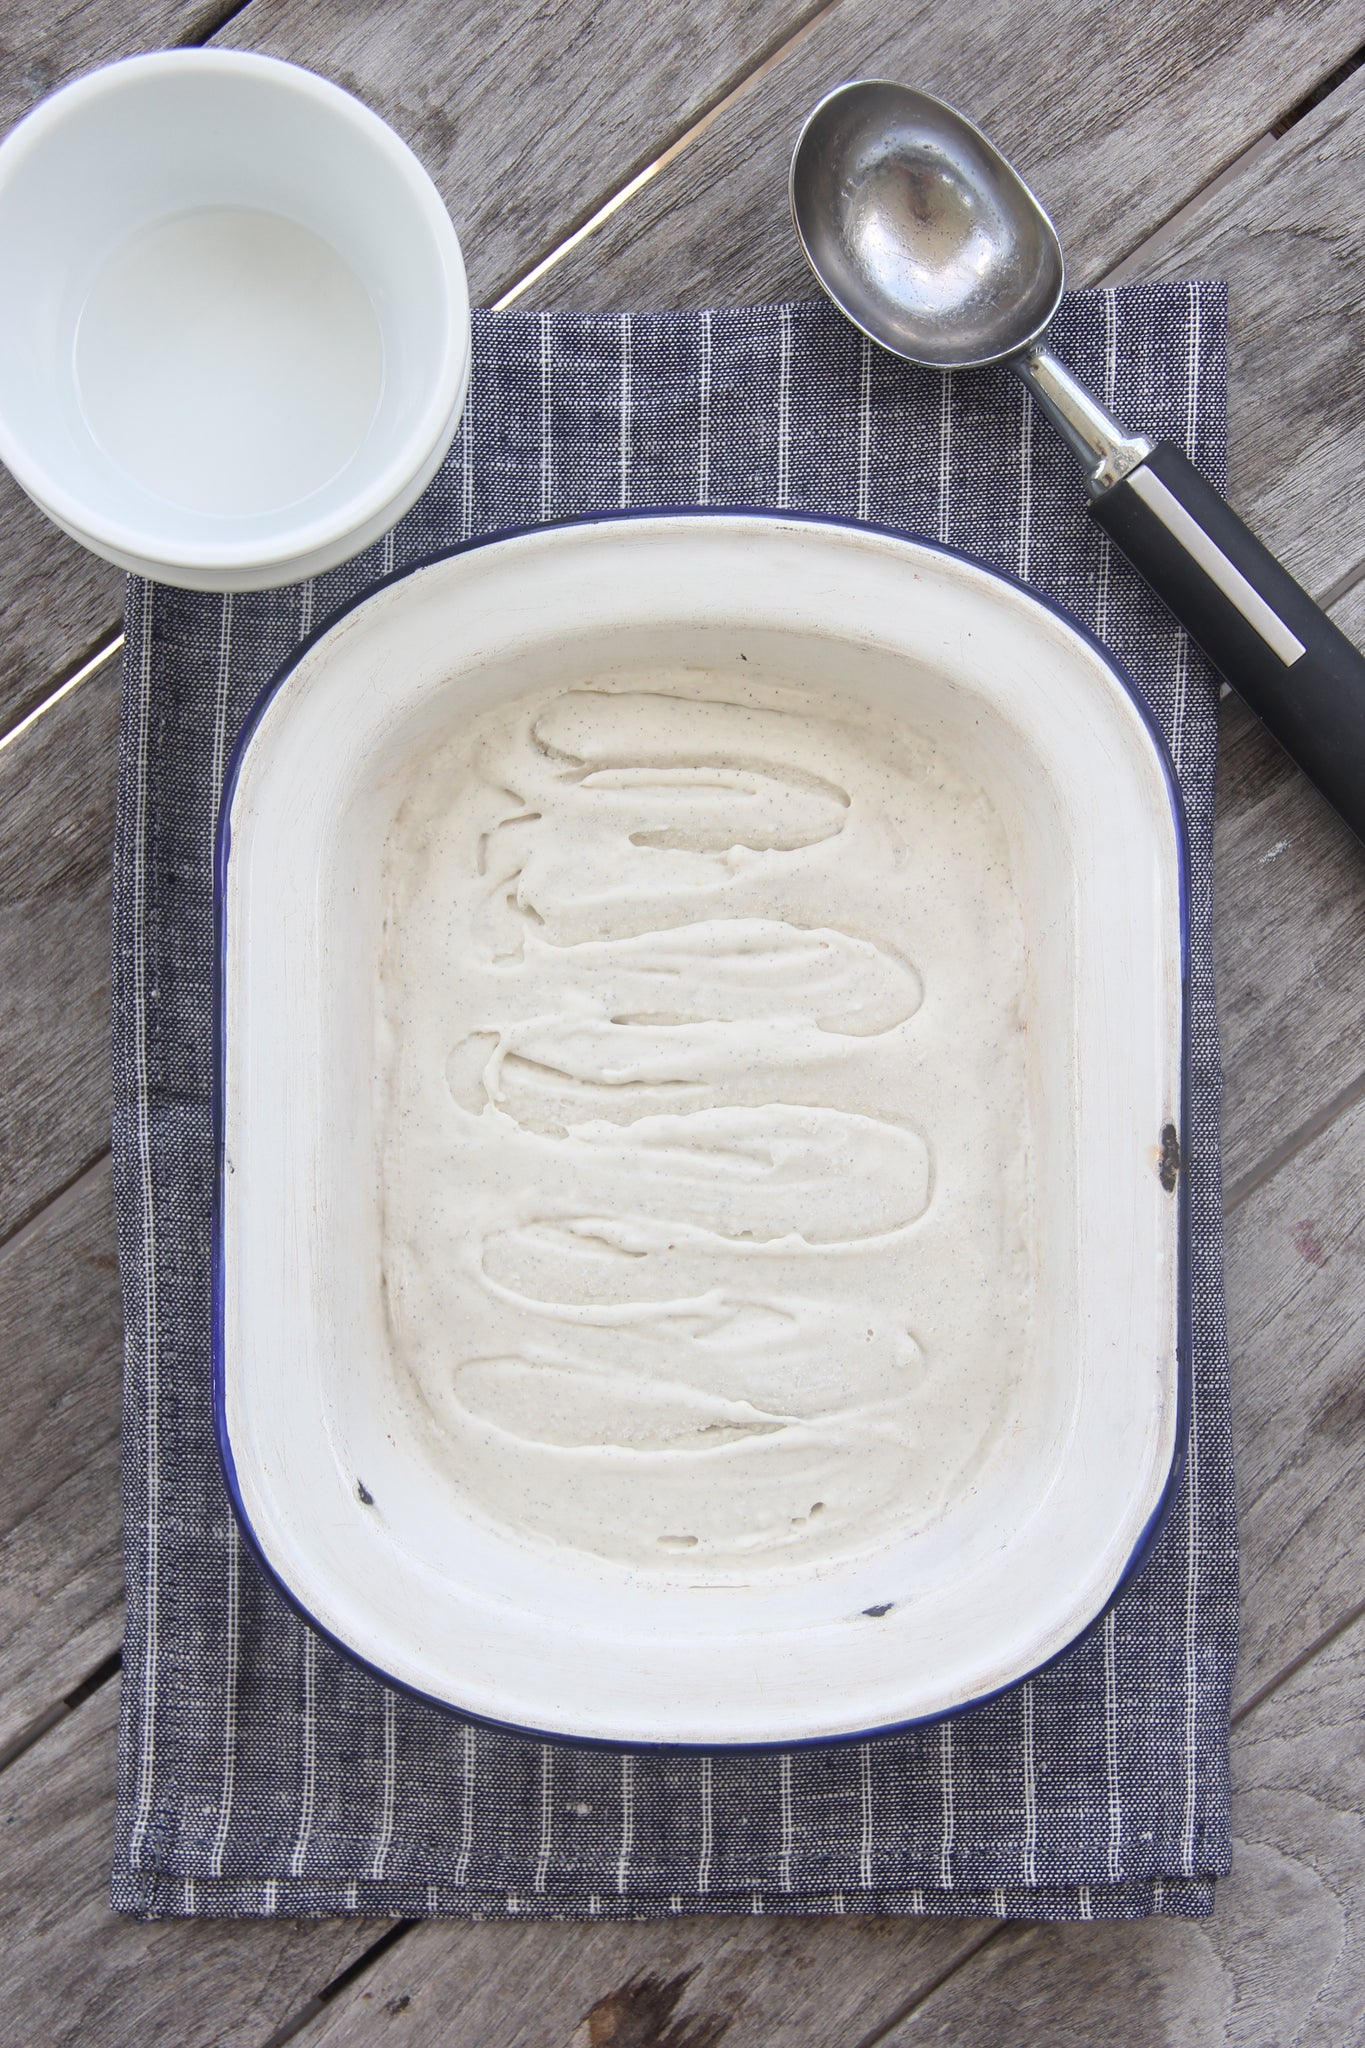 7-Ingredient deliciously creamy Vanilla Bean Ice Cream #healthy #vegan #vanilla #icecream #recipe #dairyfree #sugarfree #glutenfree #begoodorganics